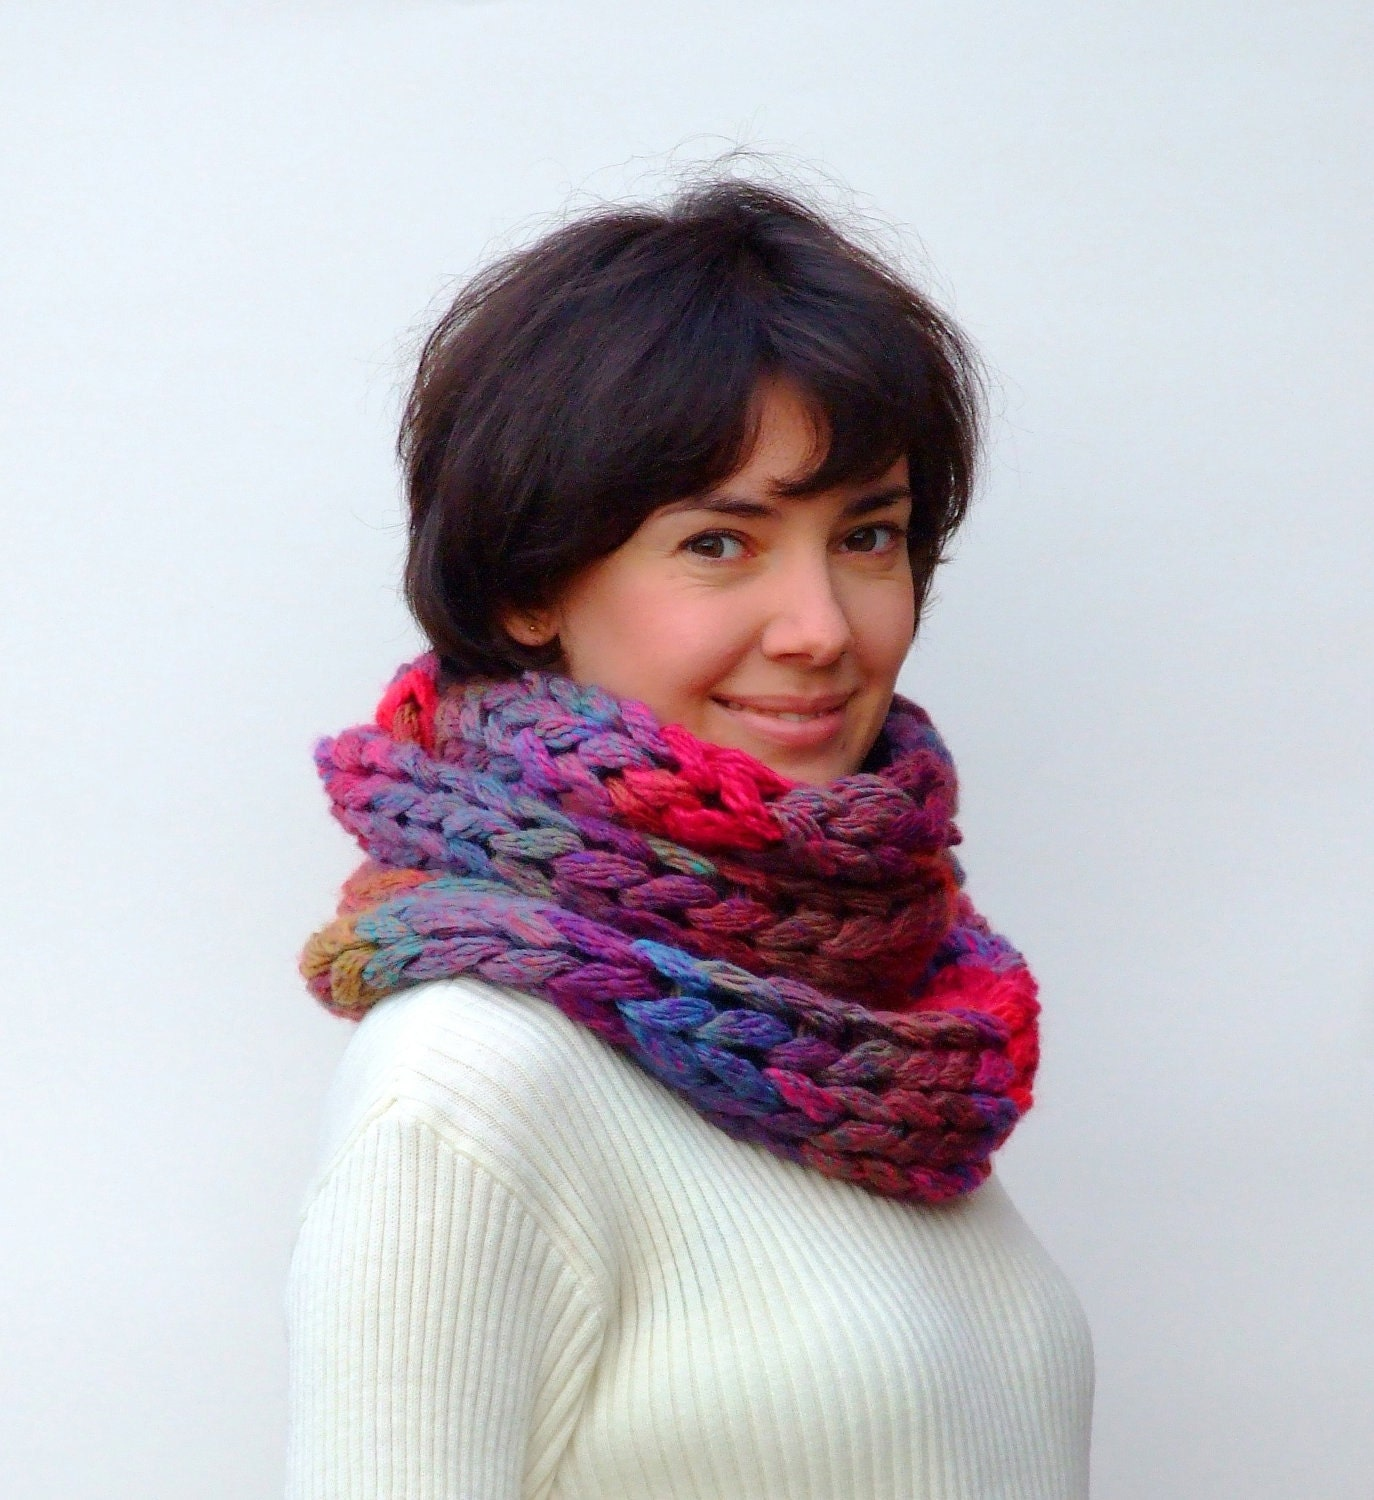 Hooded Scarf Knitting Patterns. Perfect for winter walks, seaside excursions and outdoor adventures the hooded scarf is your trusty companion. Combining a hoodie with a scarf for the ultimate functionality and fashion, the hooded scarf is a unique and crafty project 95%(K).